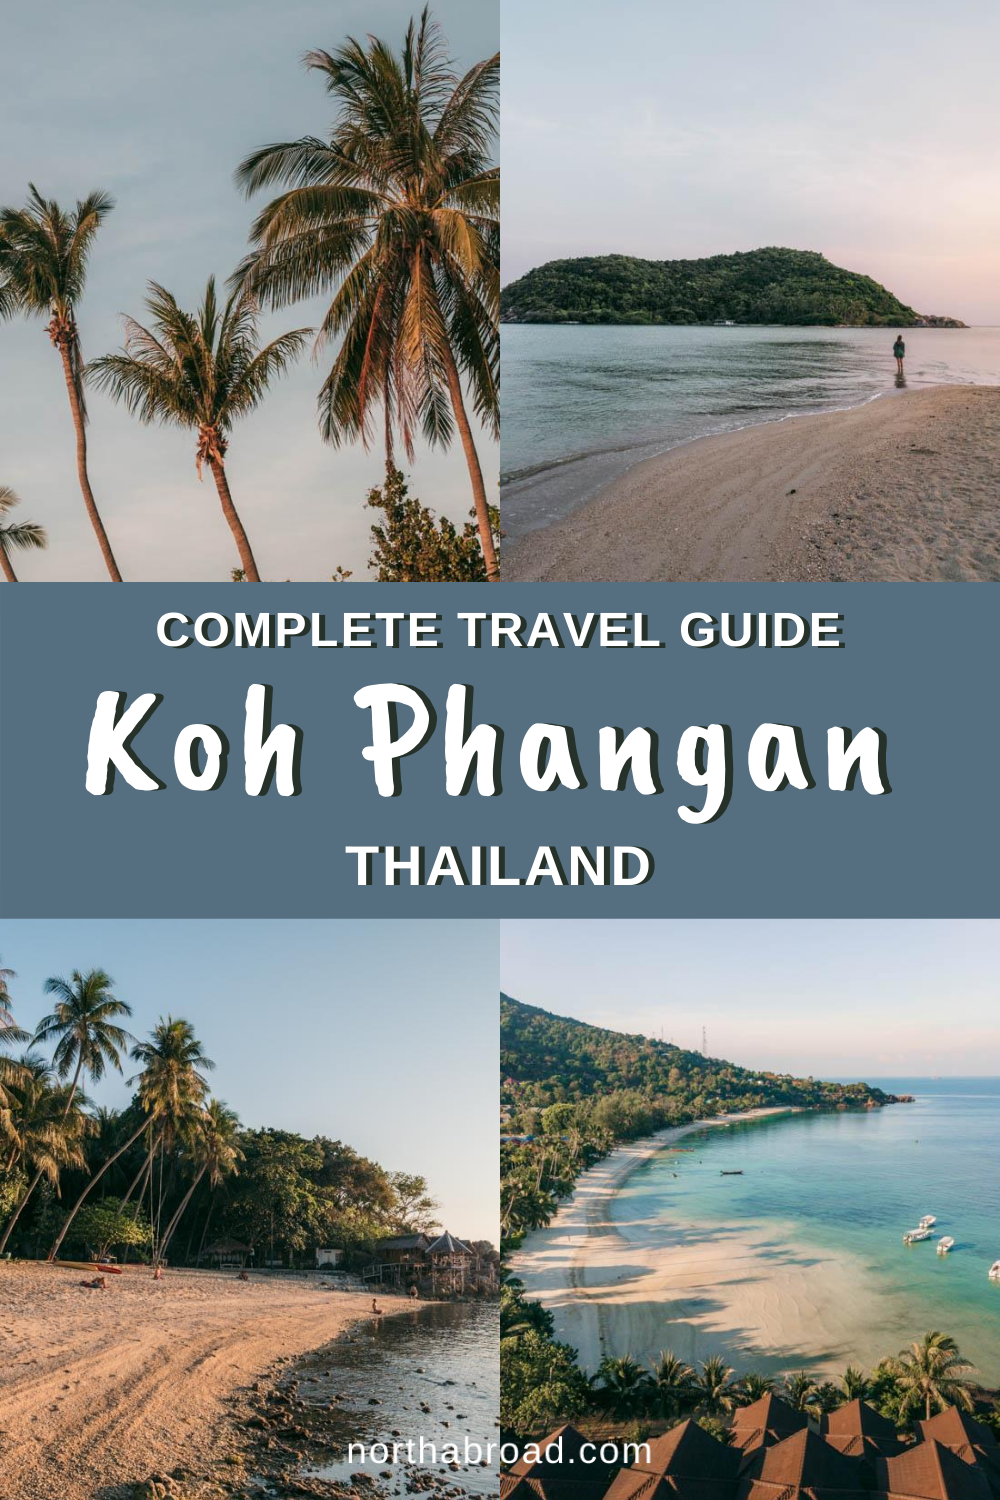 A Complete Travel Guide to Koh Phangan: Chill Out, Relax and Rejuvenate